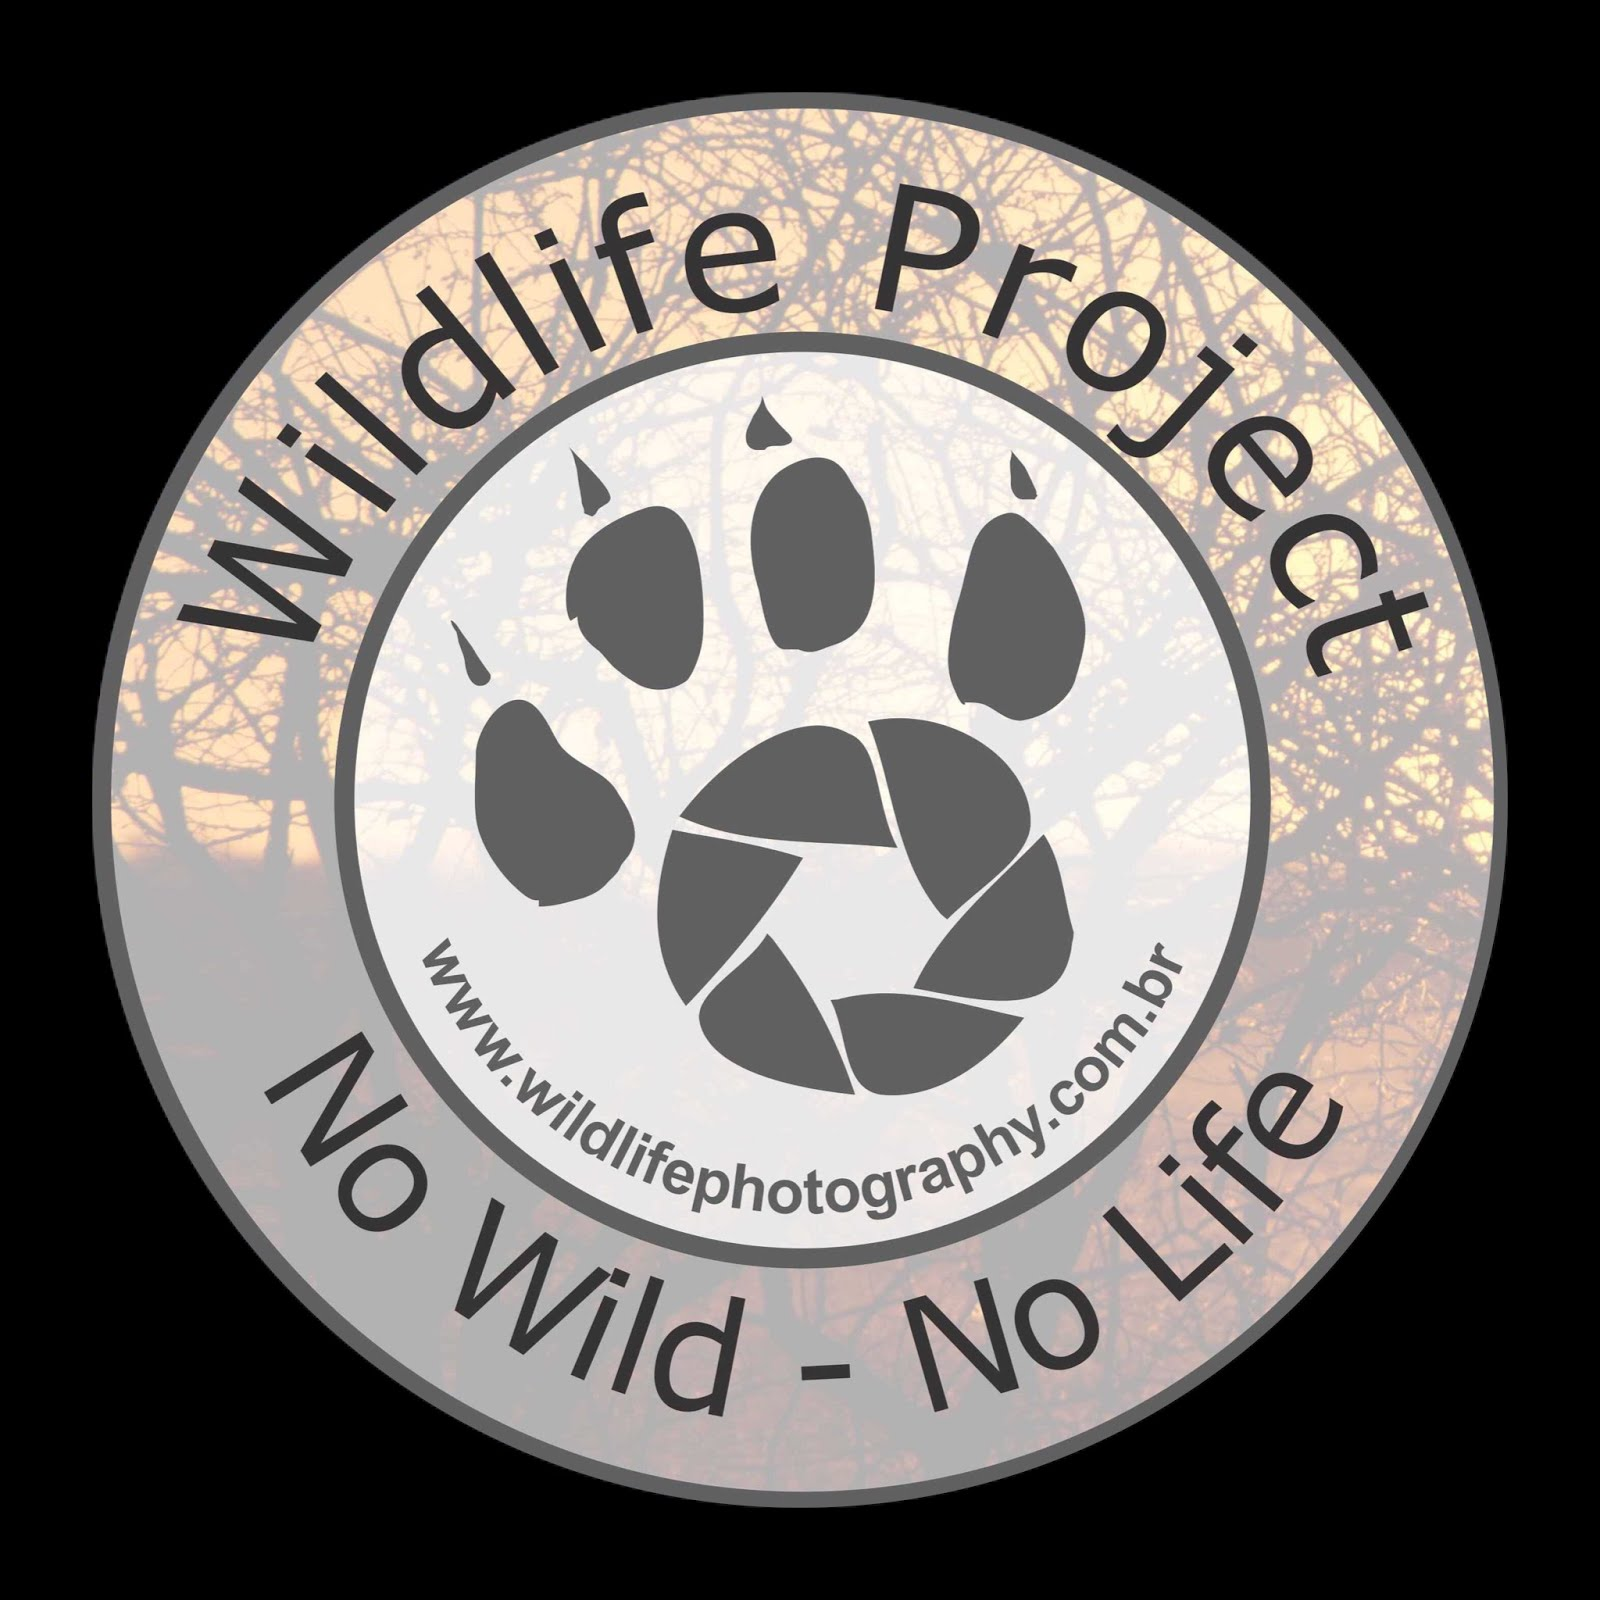 Wildlife Project Official LOGO